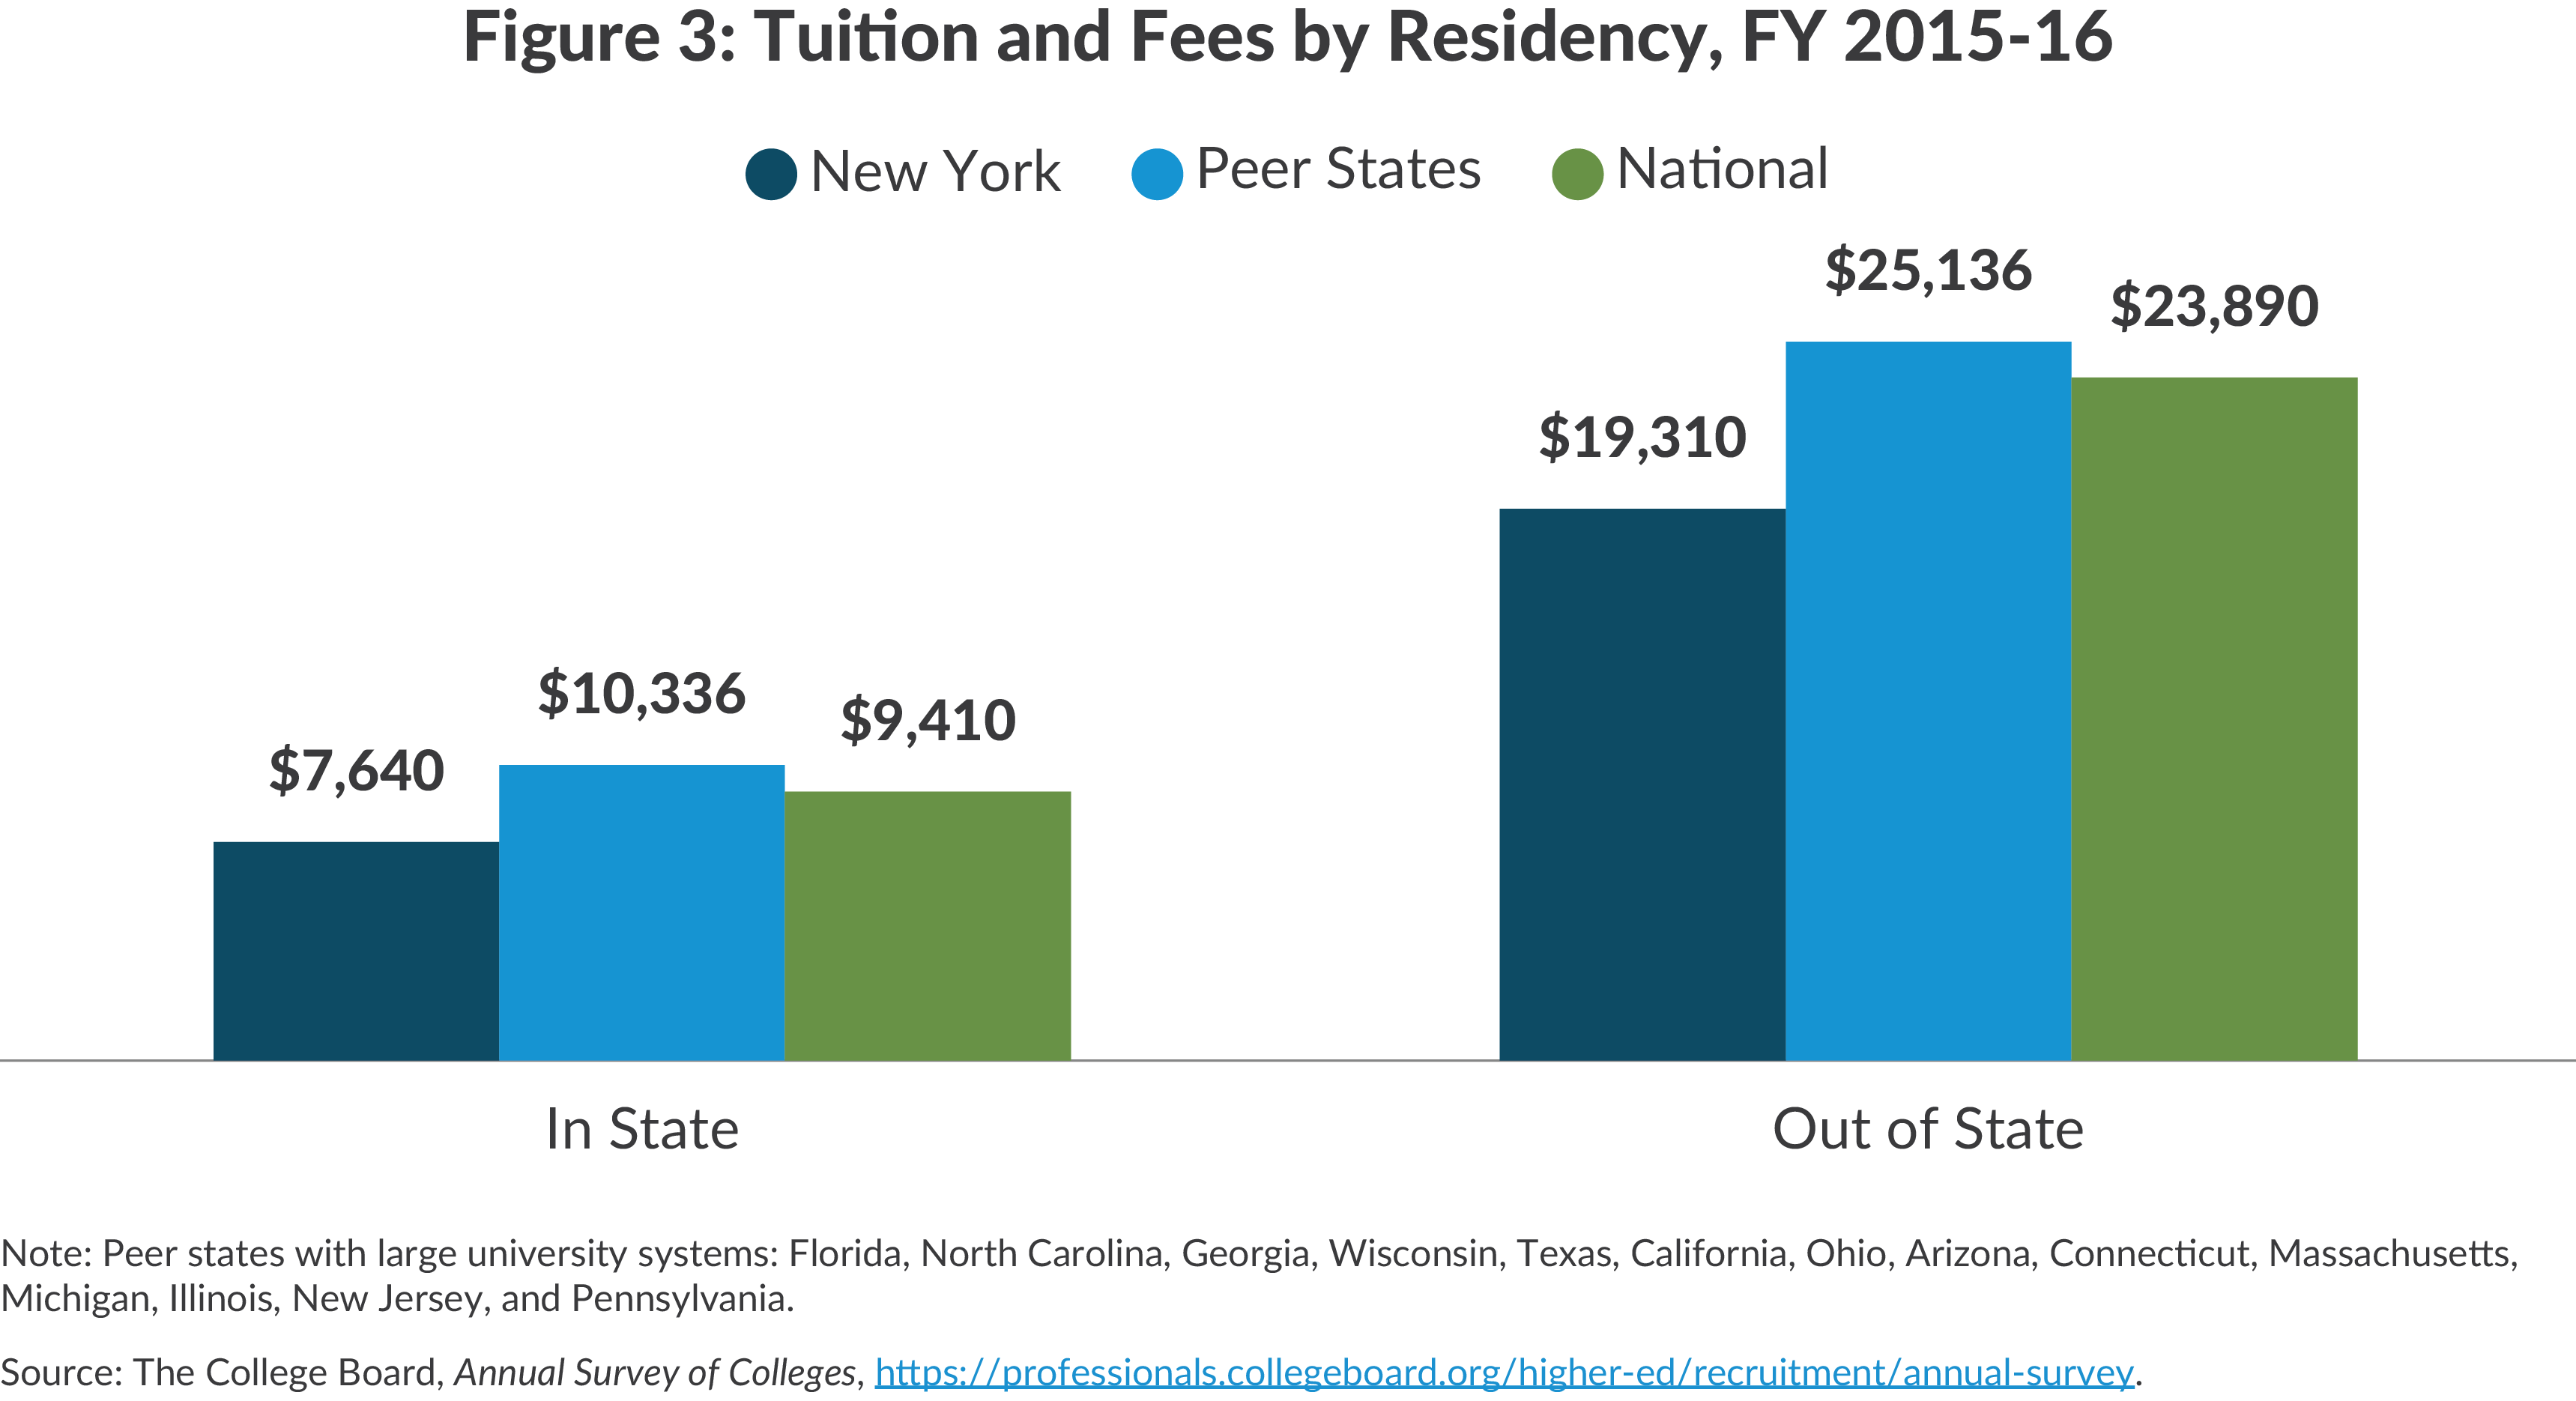 Figure 3: Tuition and Fees by Residency  FY 2015-16